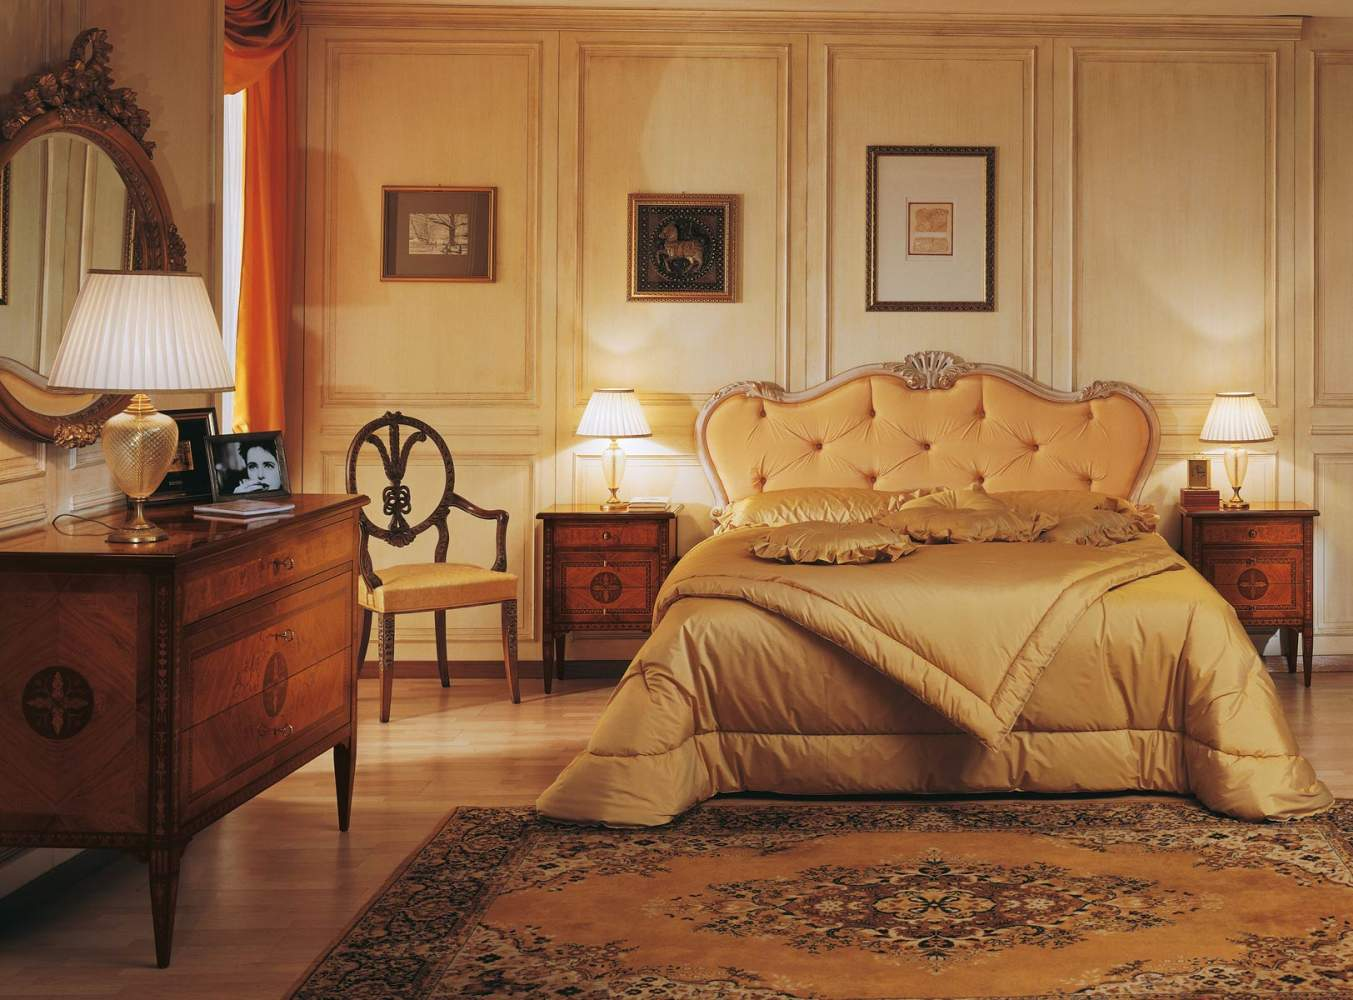 Classic luxury Maggiolini bedroom, capitonnè bed, chest of drawers and night tables in walnut and olive wood